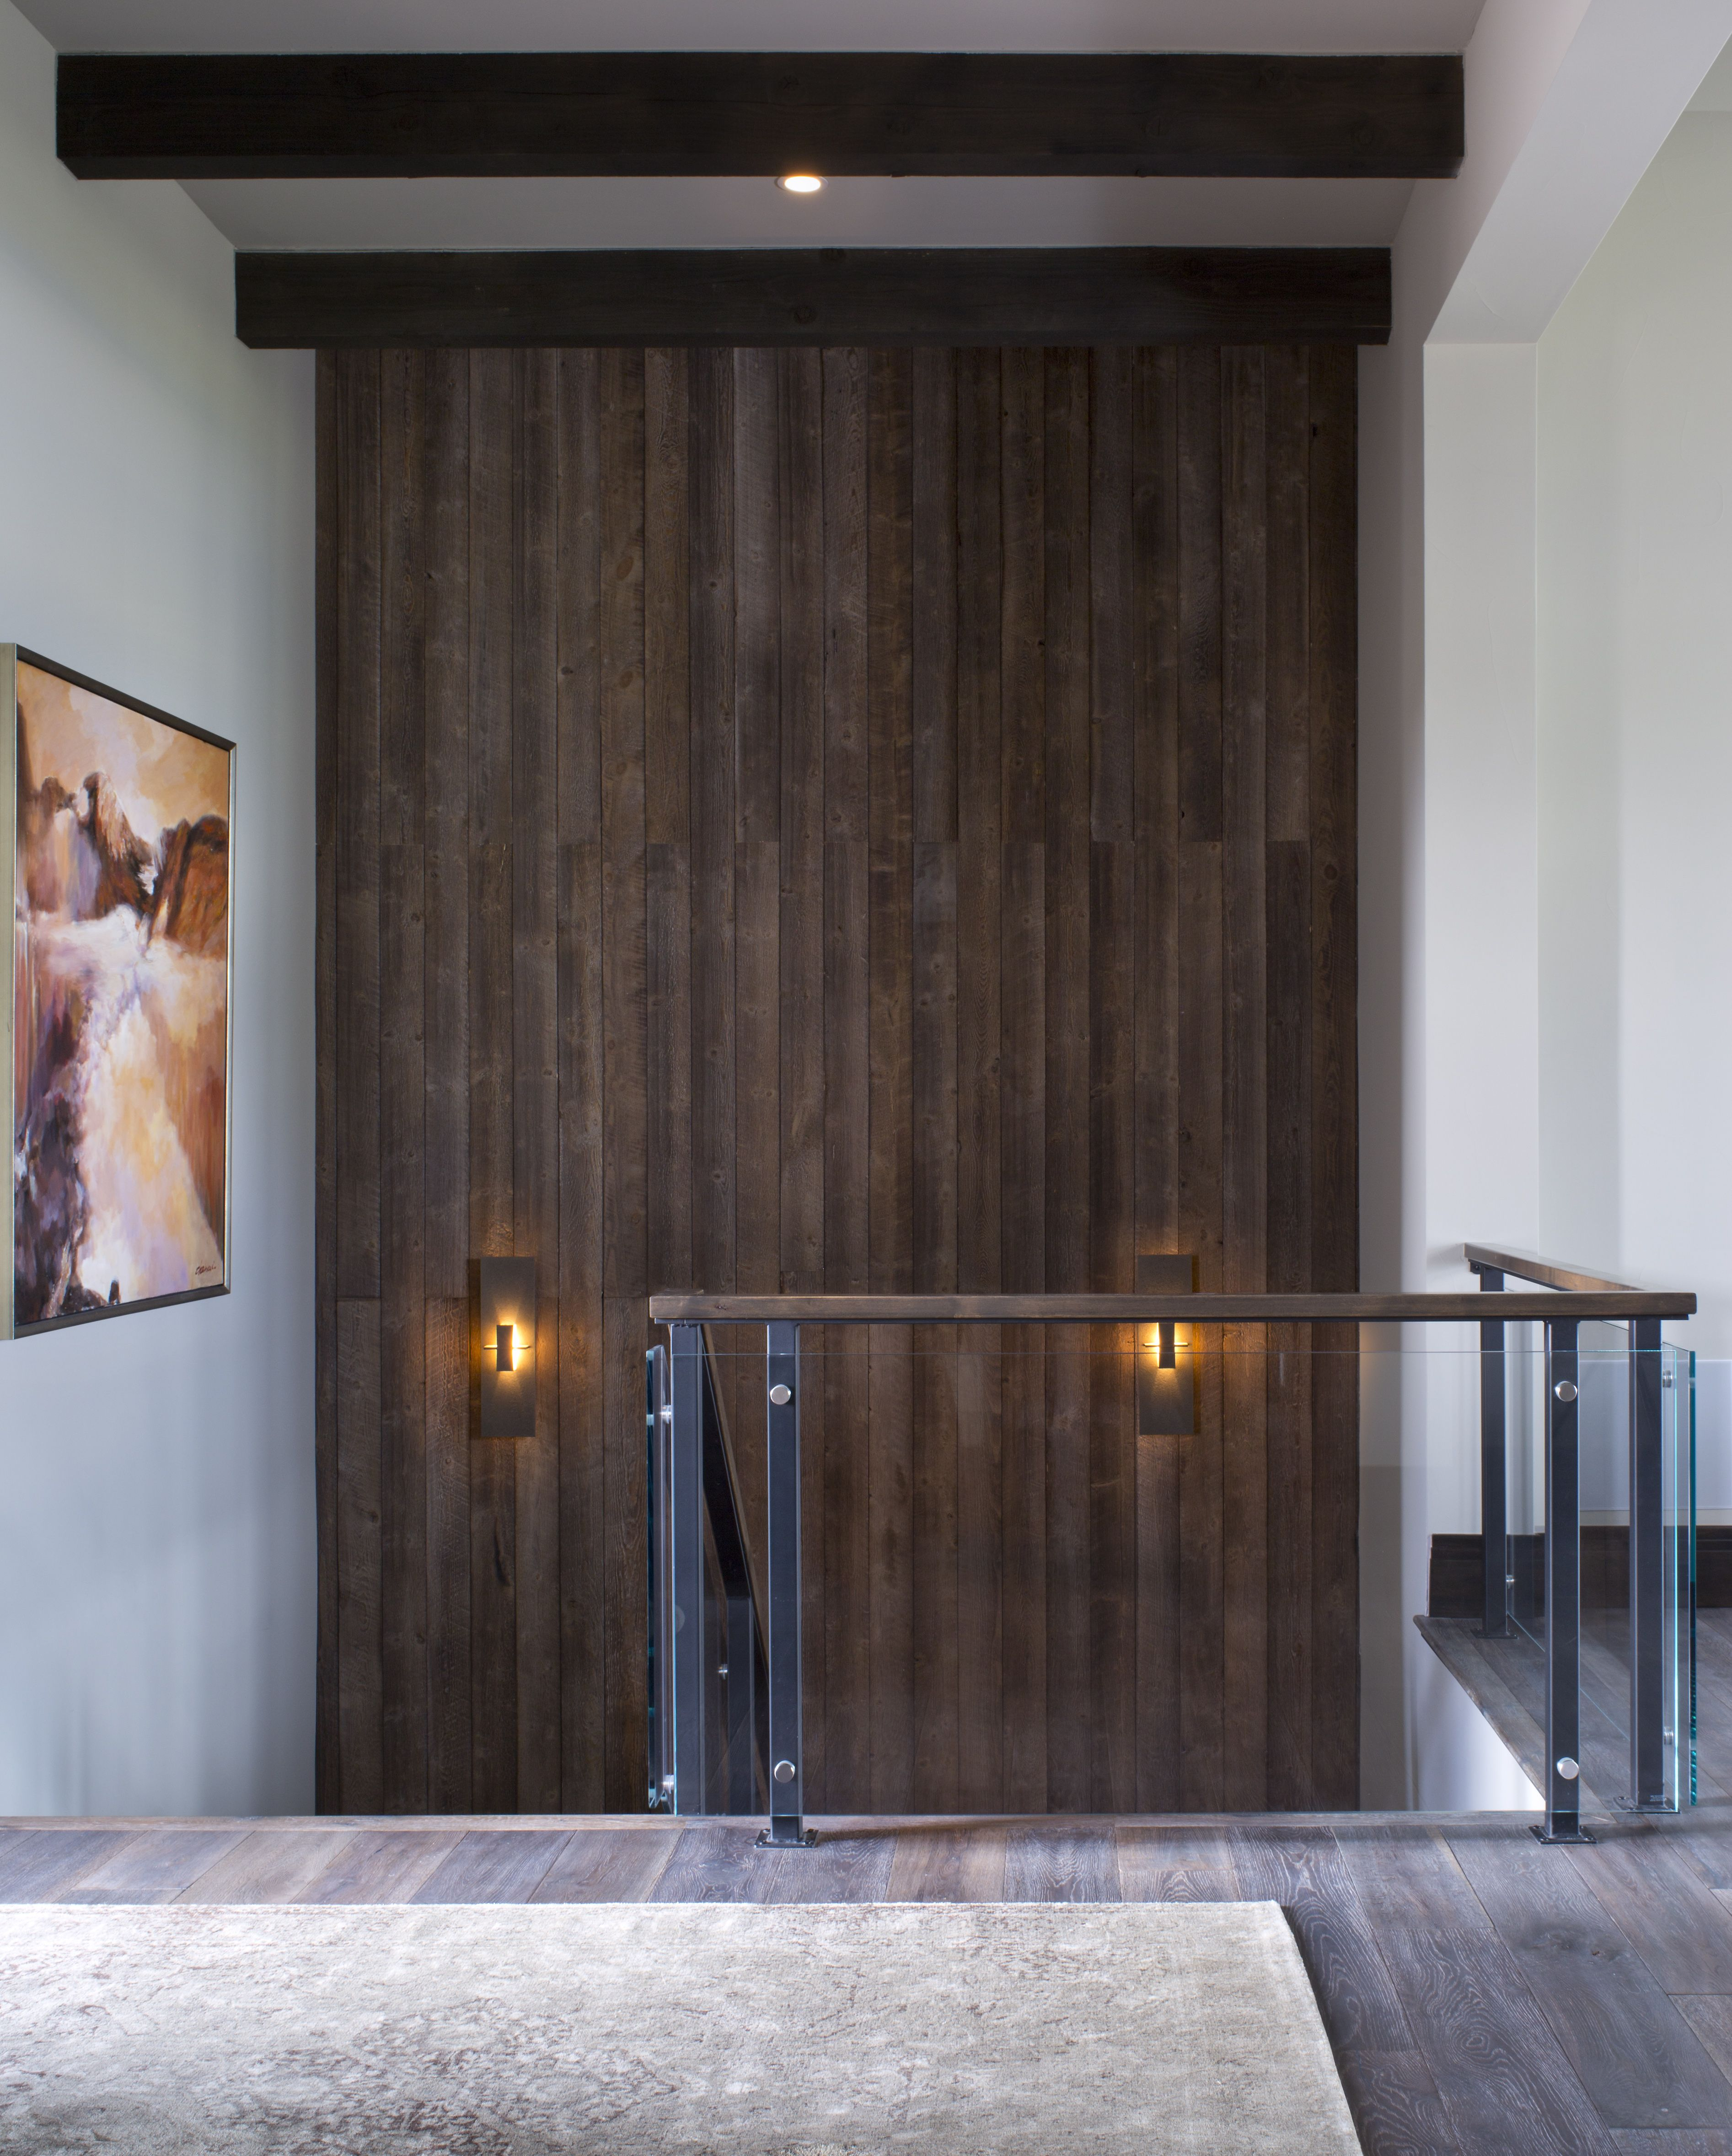 Accent Wall Dual Staircase: A Demure And Modern Staircase Accent With A Dark Wood Wall